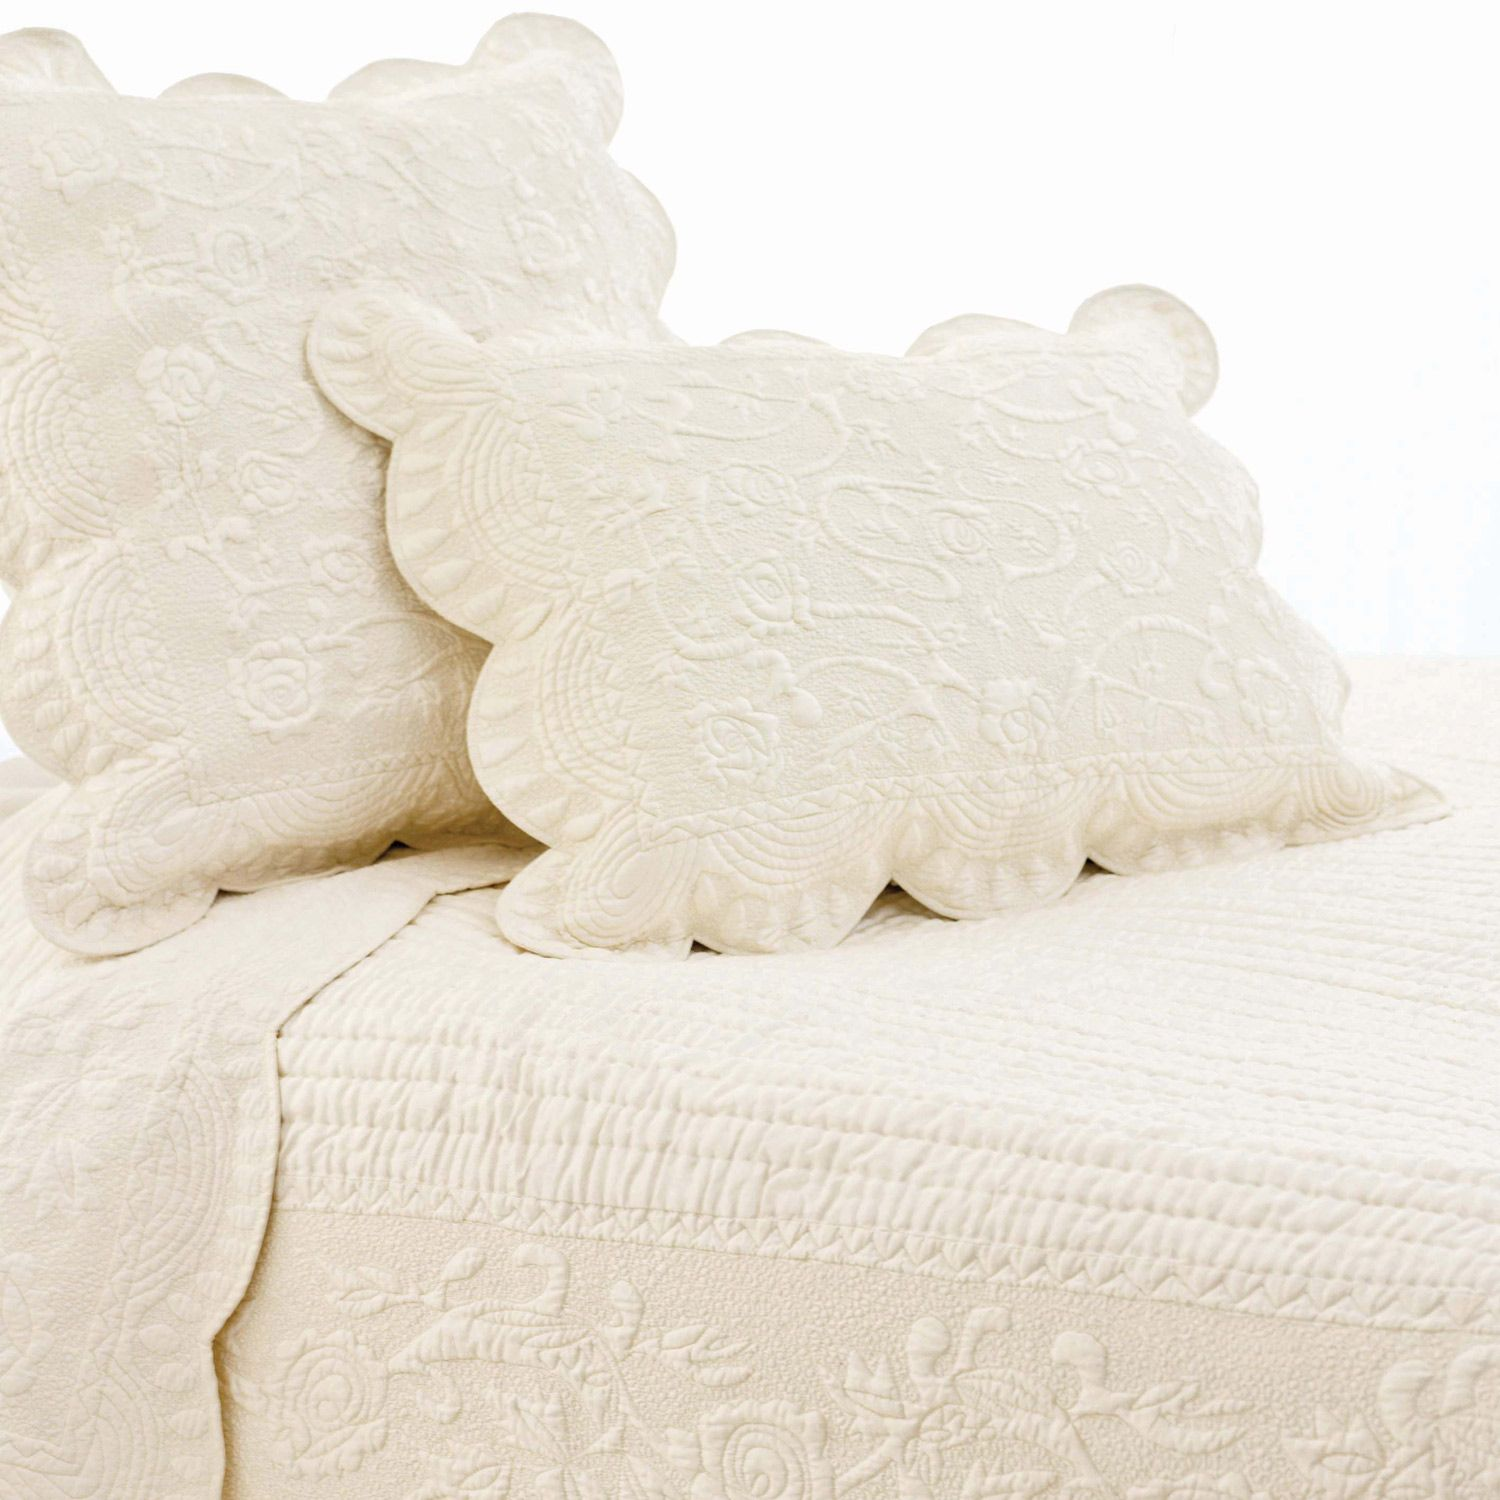 Pine Cone Hill Fanny Ivory Quilt Set @LaylaGrayce | Decor I like ... : ivory quilt set - Adamdwight.com